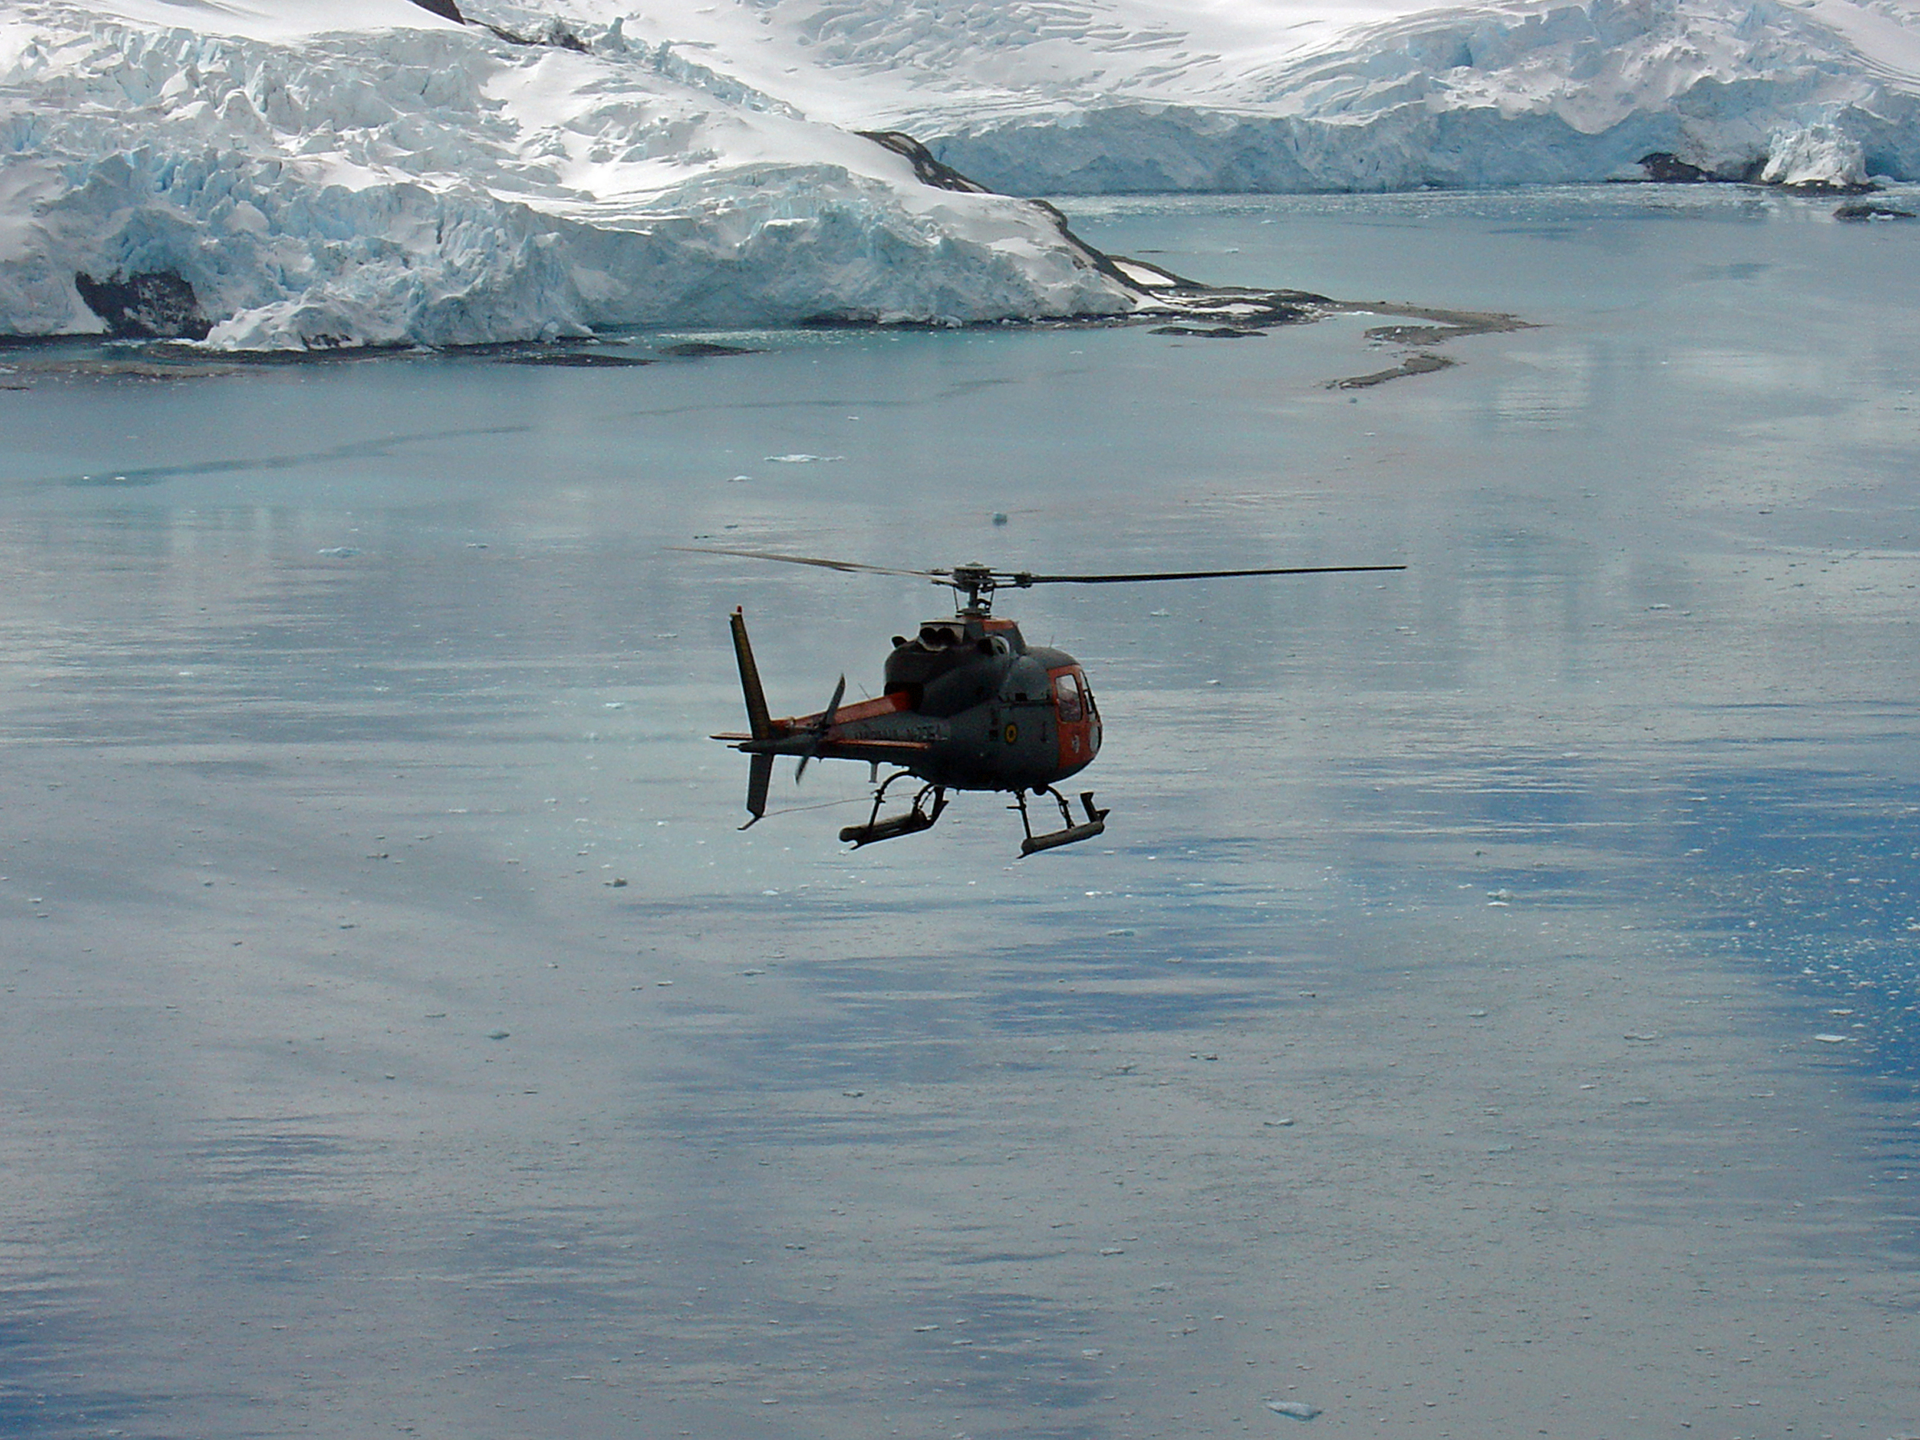 Image of H125 flying above Arctic sea